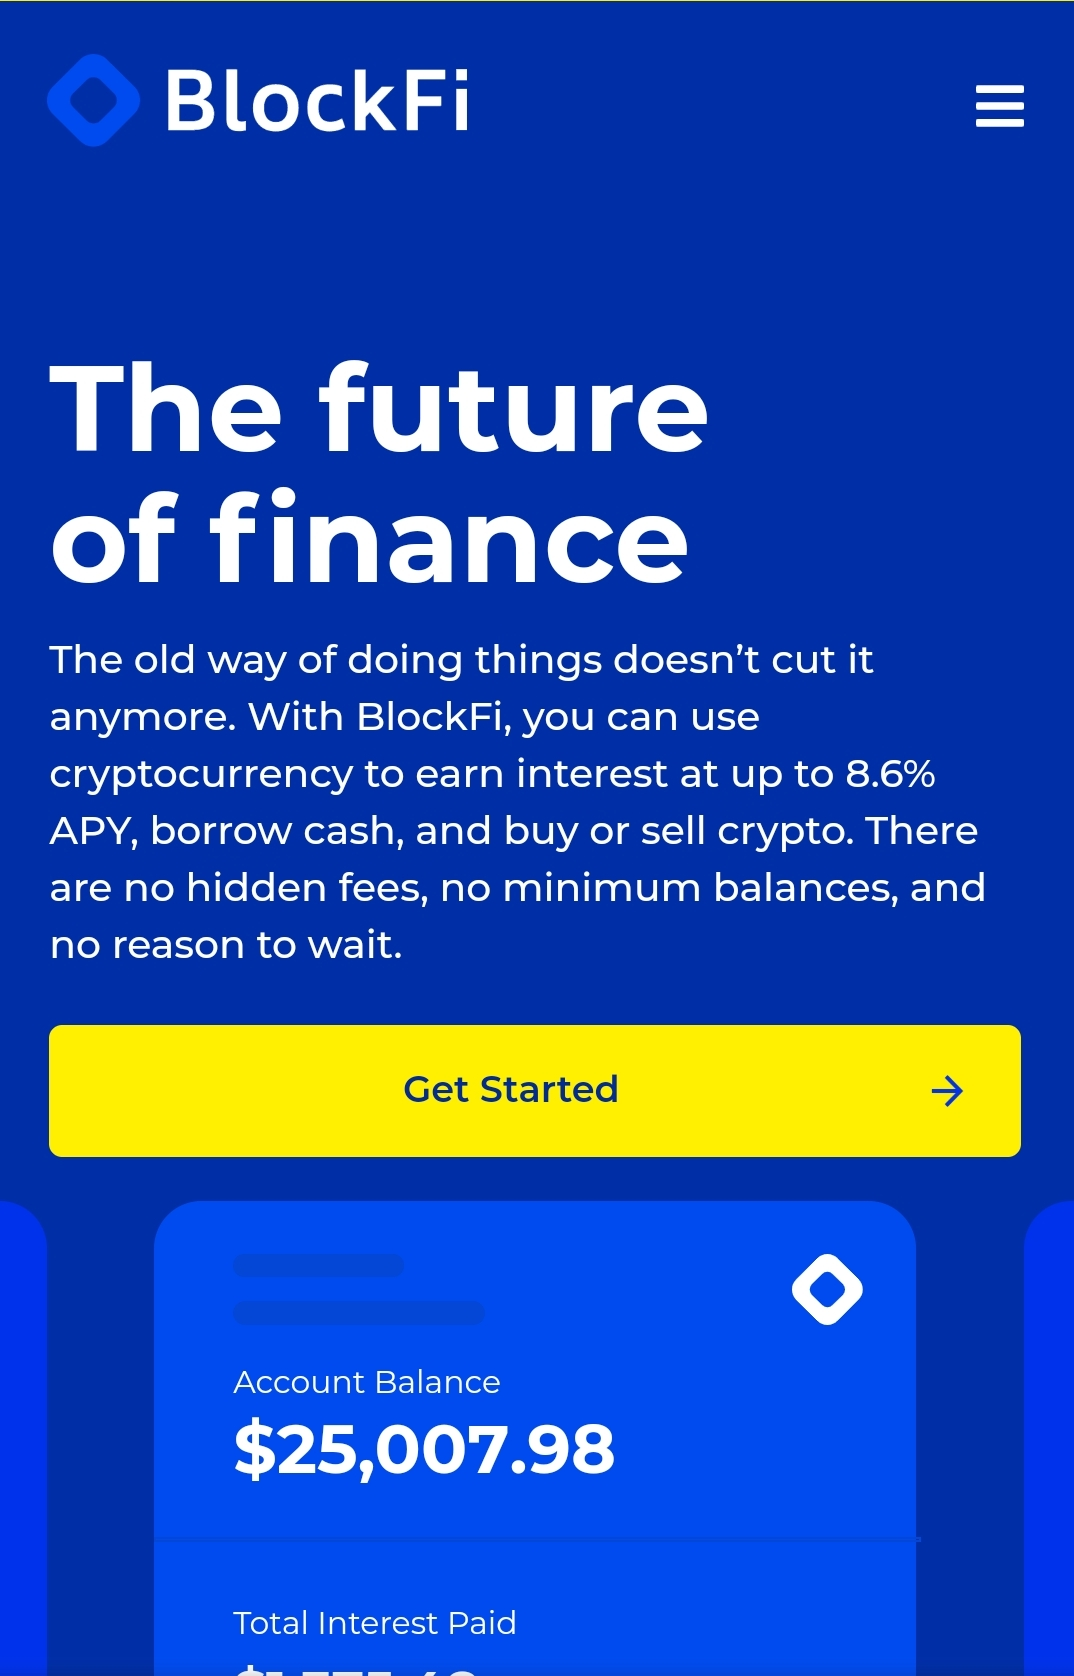 bitcoin price prediction, yield farming crypto, multiple income streams, cryptocurrency prices, what is cryptocurrency, passive income streams, passive income sources, sources of passive income, quit your job, how to quit a job, how to quit your job, best reasons to leave a job, I want to quit my job , passive income strategies, how to make money with cryptocurrency, cryptocurrency investing, What is yield farming, What is staking crypto, Best staking coins, What are the benefits of staking crypto, What are staking rewards, Important things to consider before staking crypto, Is staking crypto worth it, how to earn interest on bitcoin, how to earn interest on crypto, What are DeFi liquidity pools, how do defi liquidity pools work, how to buy your first bitcoin, best cryptos to buy in 2021